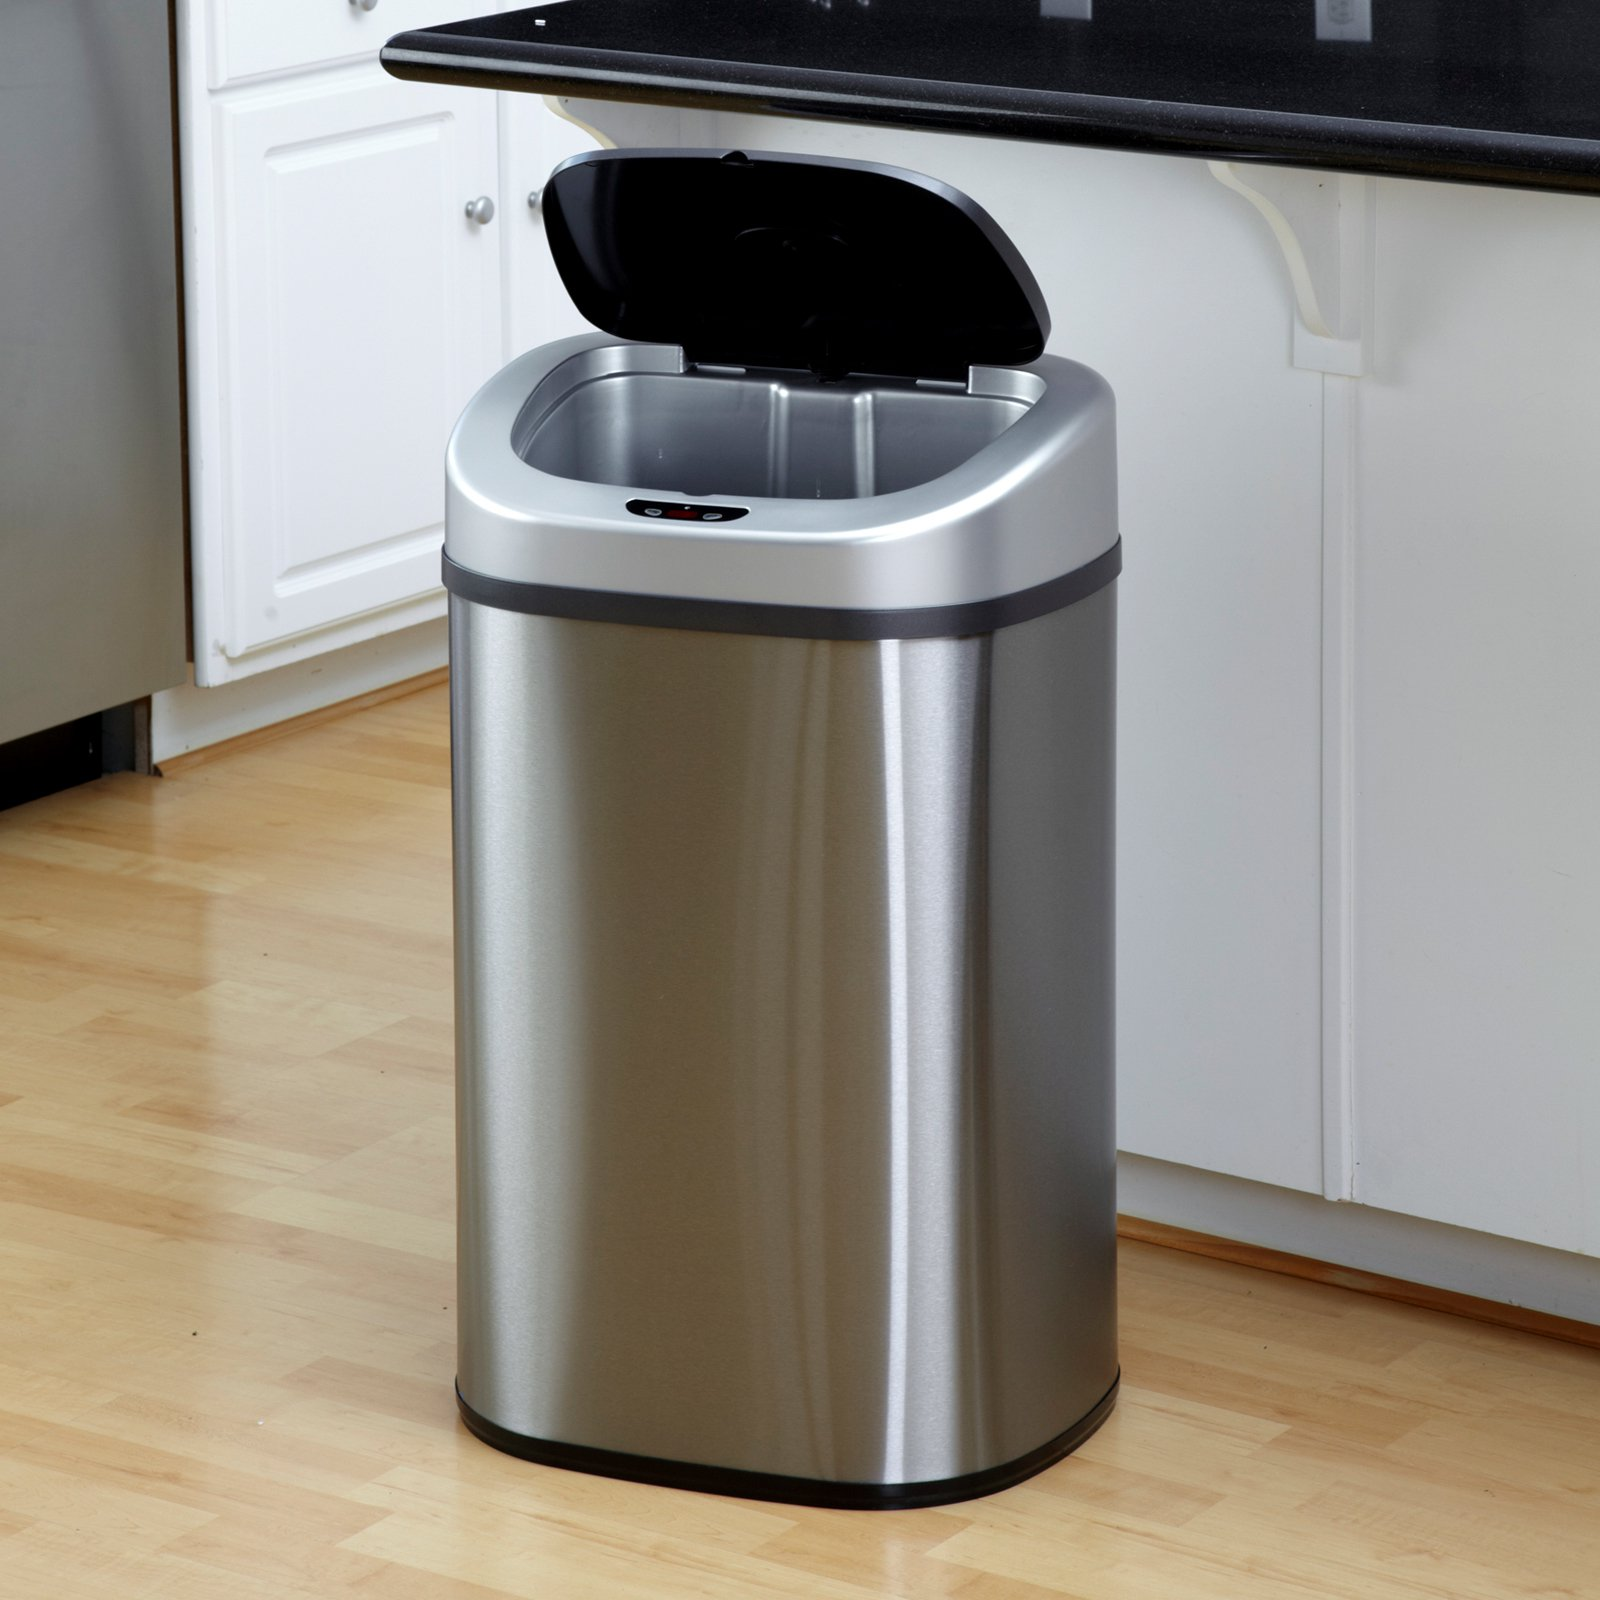 nine stars dzt 80 4 touchless stainless steel 21 1 gallon trash can rh walmart com trash cans for kitchen garbage cans for kitchen cabinet